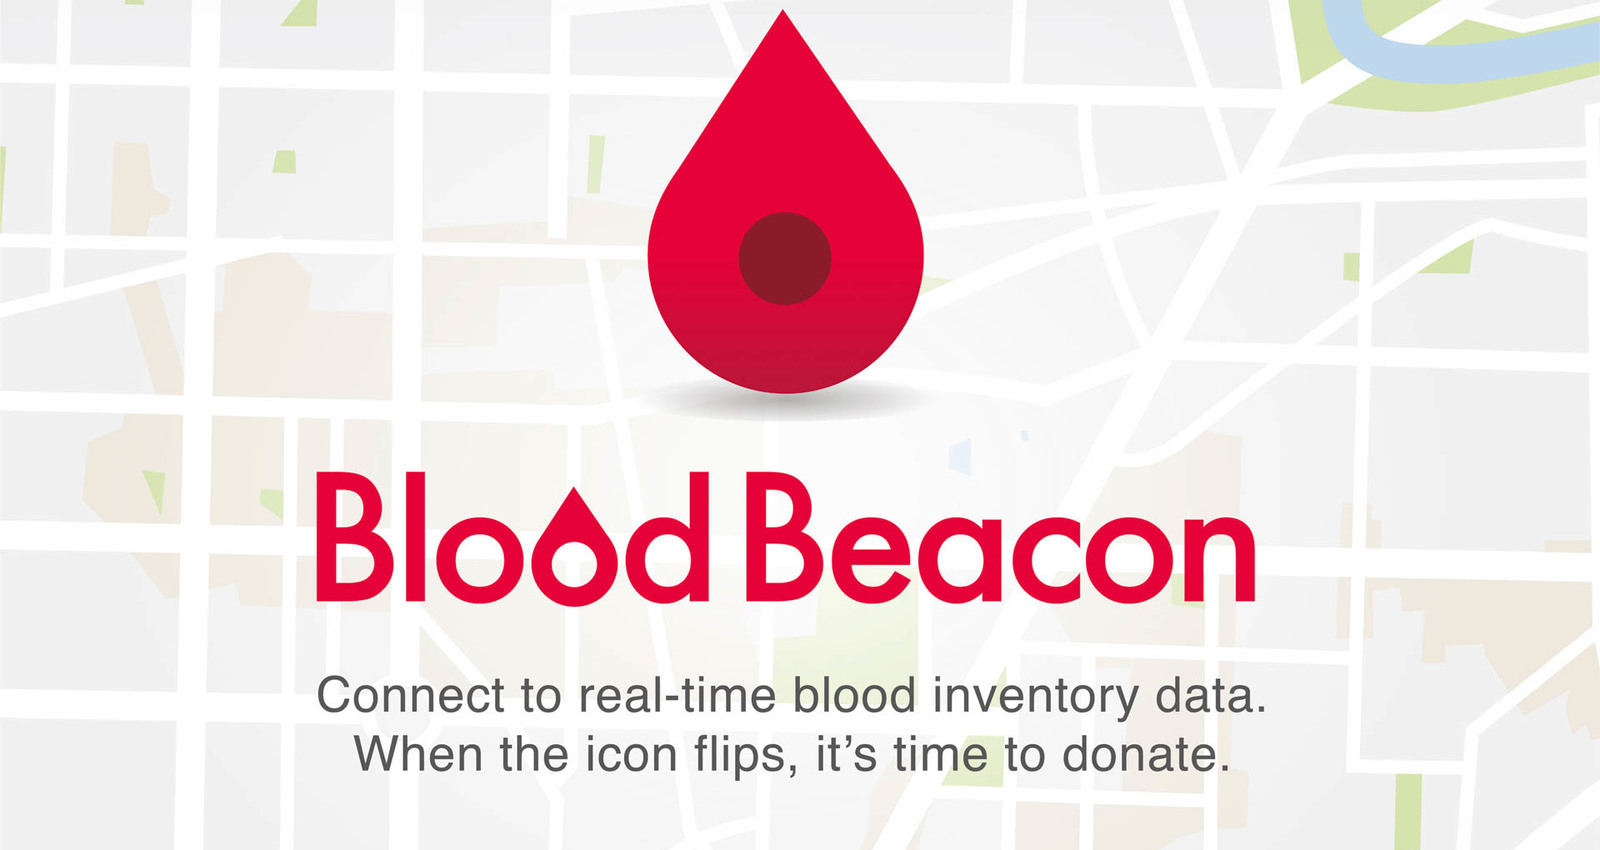 Blood Beacon